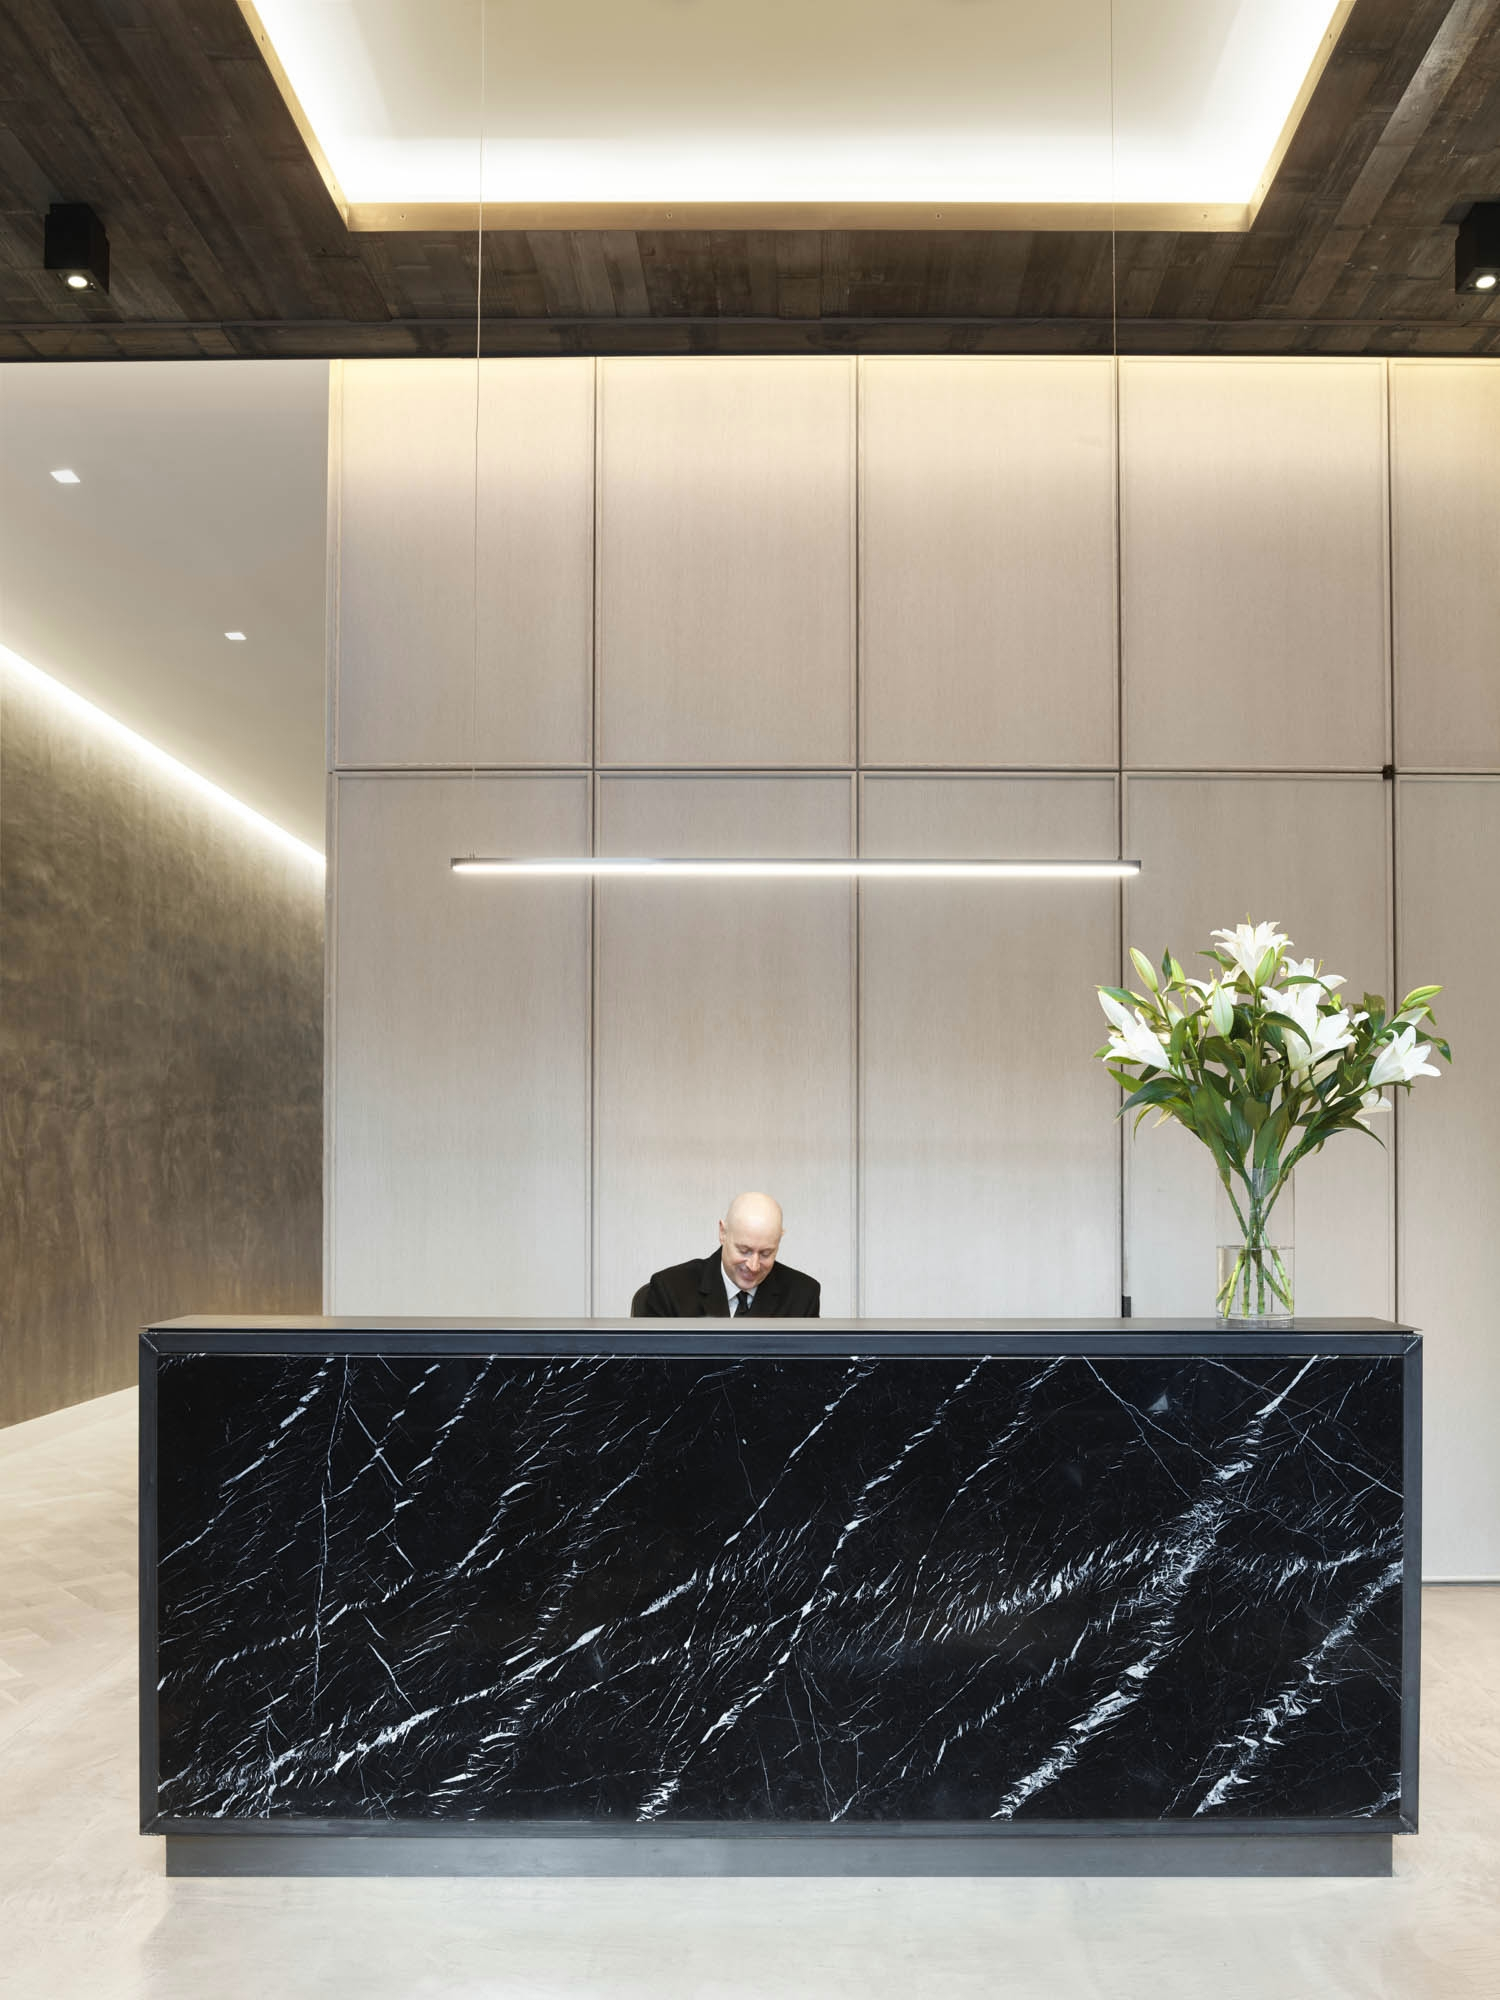 The Sutton Condominium Front Desk and Lobby